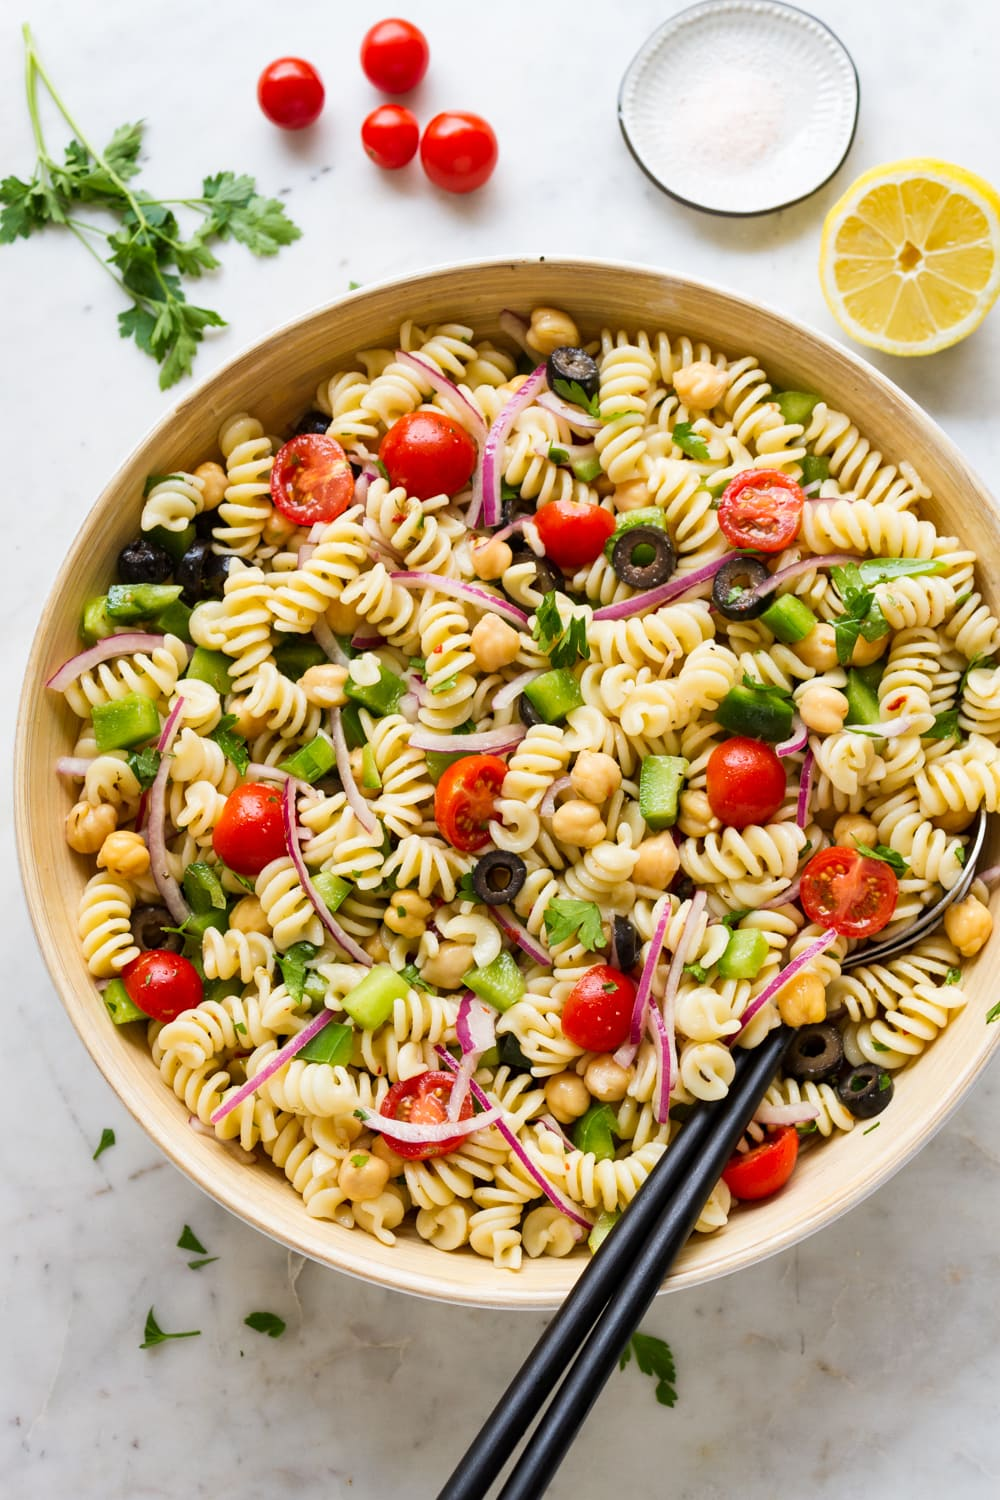 top down view of freshly mixed easy vegan pasta salad in a large serving bowl.